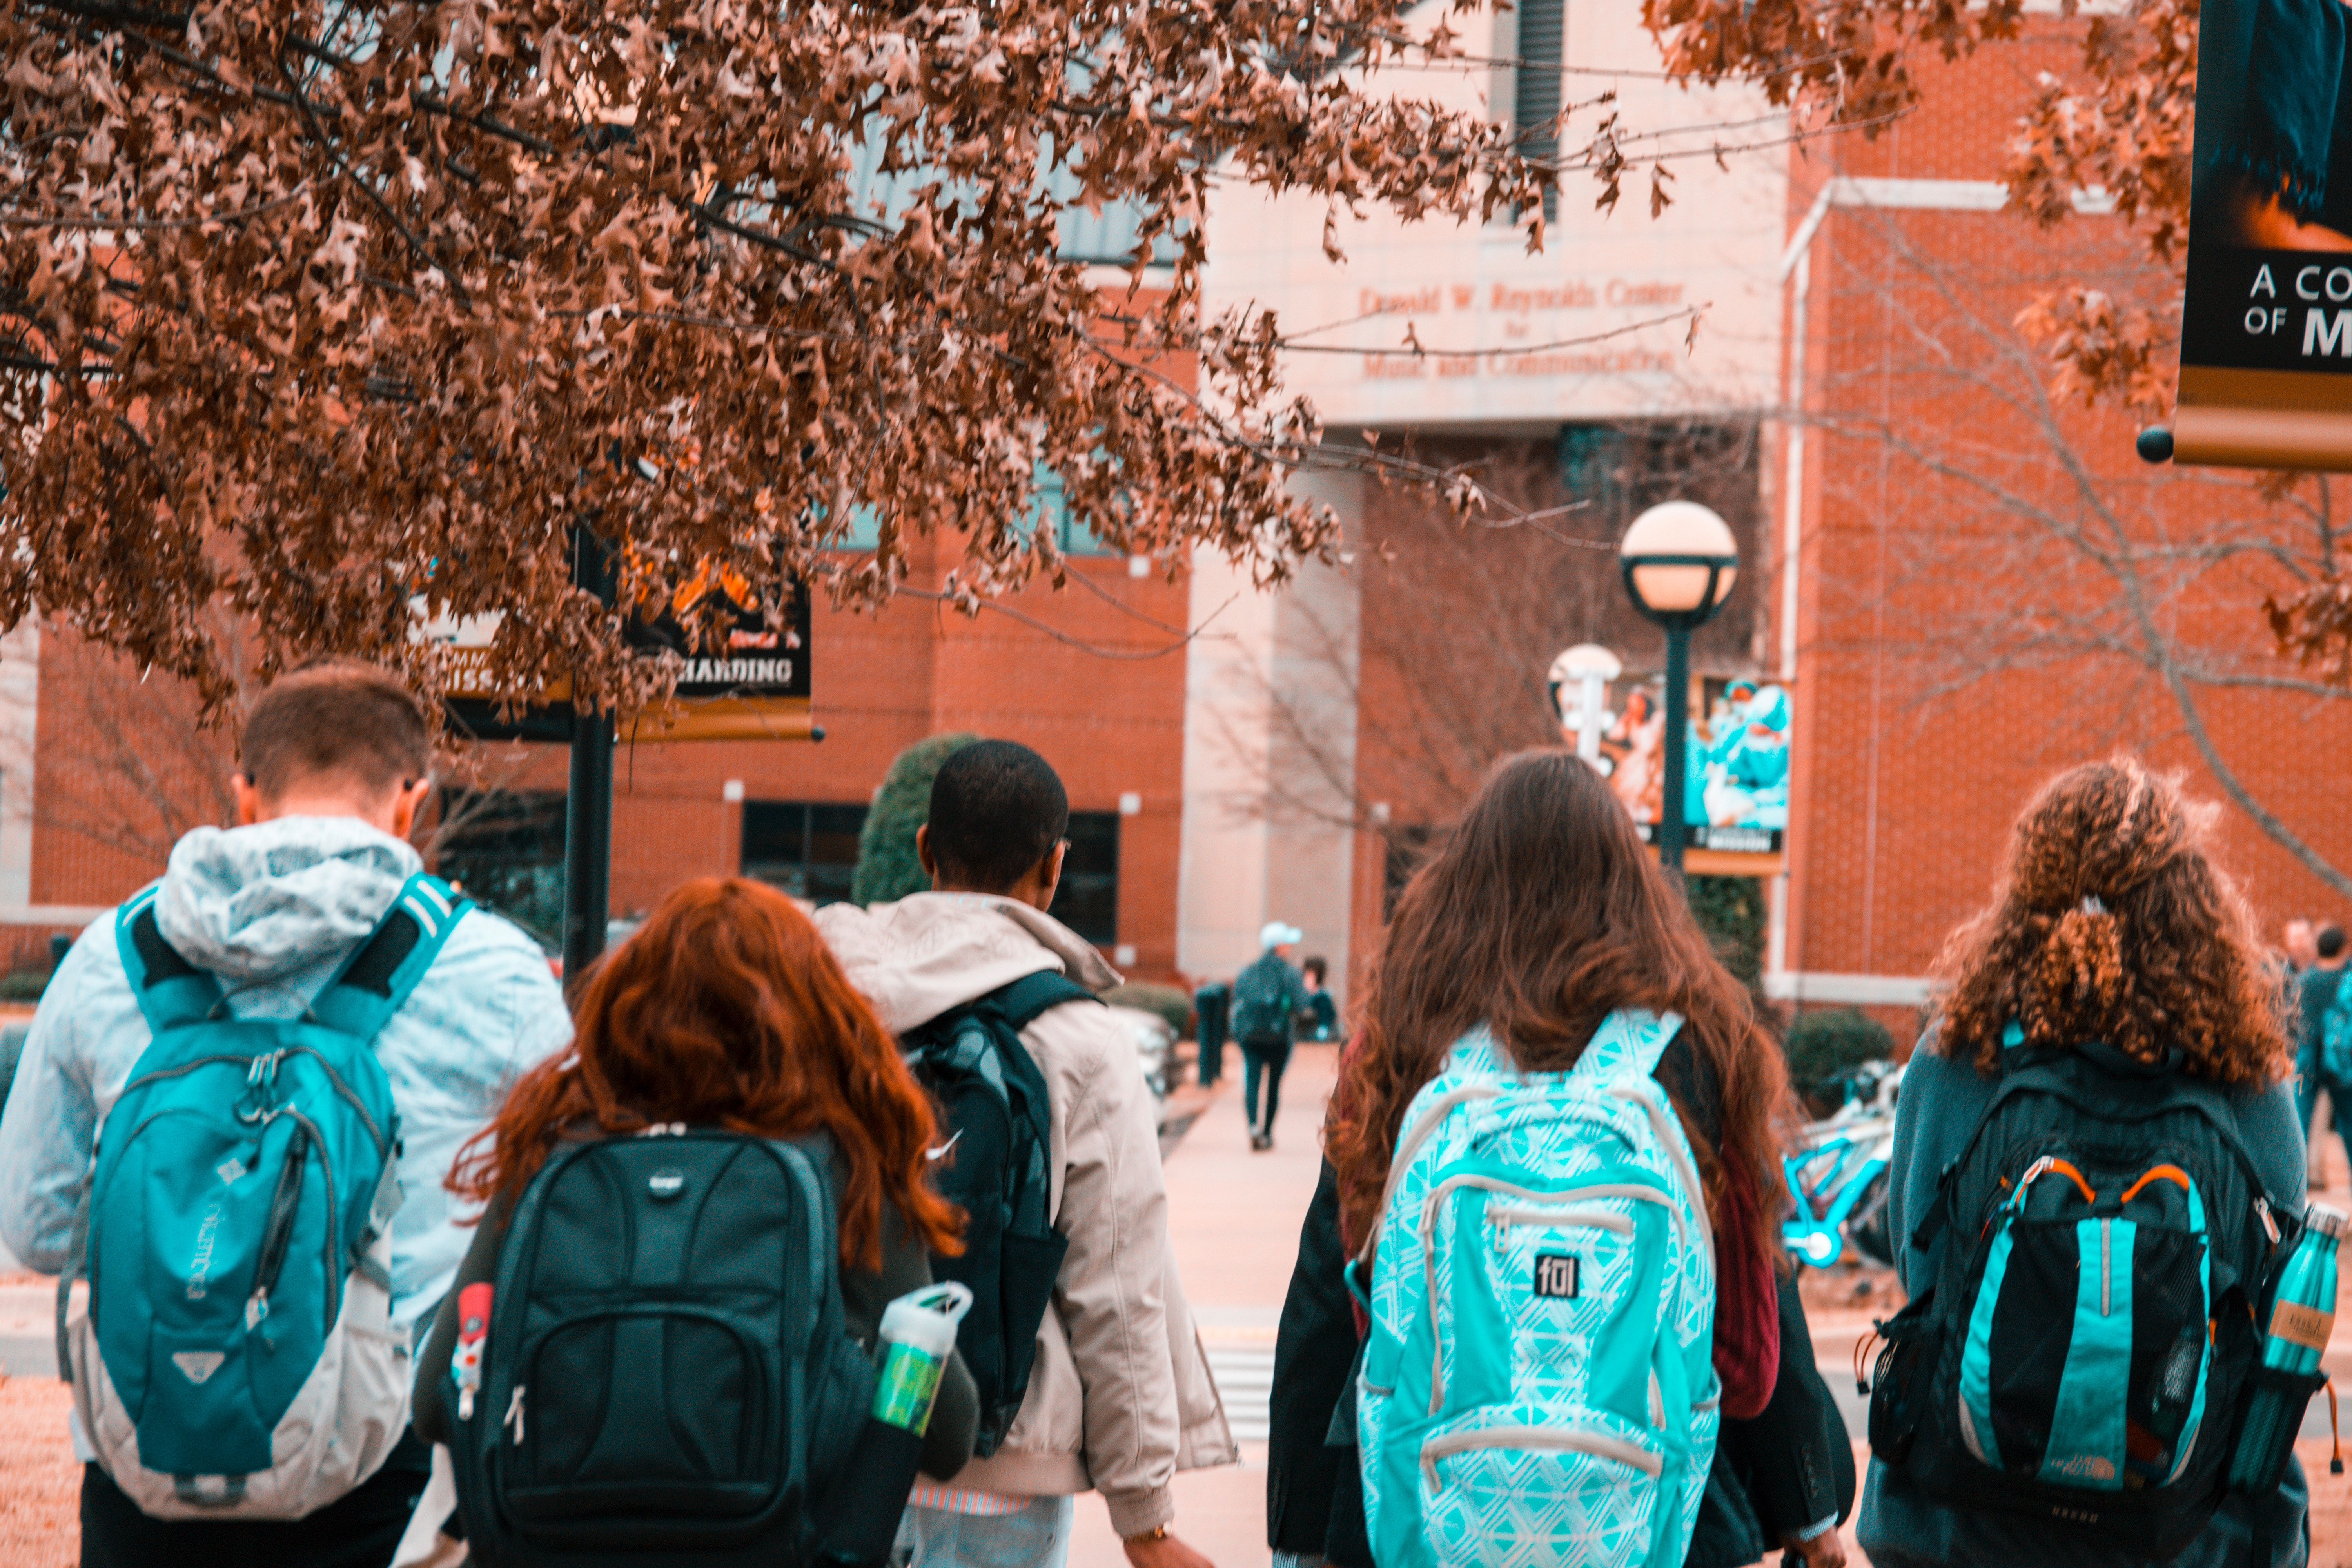 backpacks-college-college-students-1454360